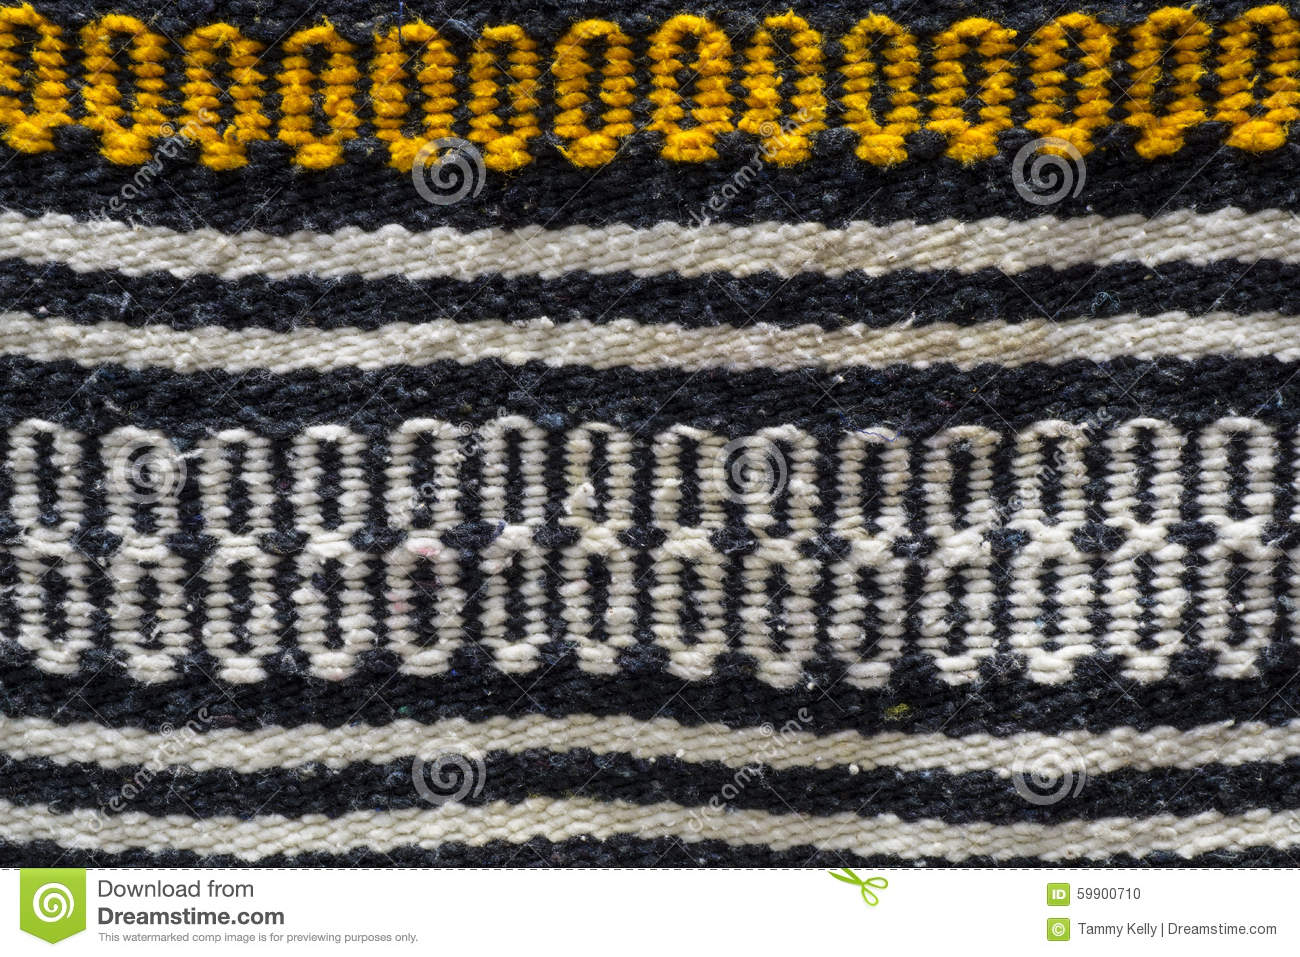 Patterns On Old Blanket With Geometric Shapes And Symbols